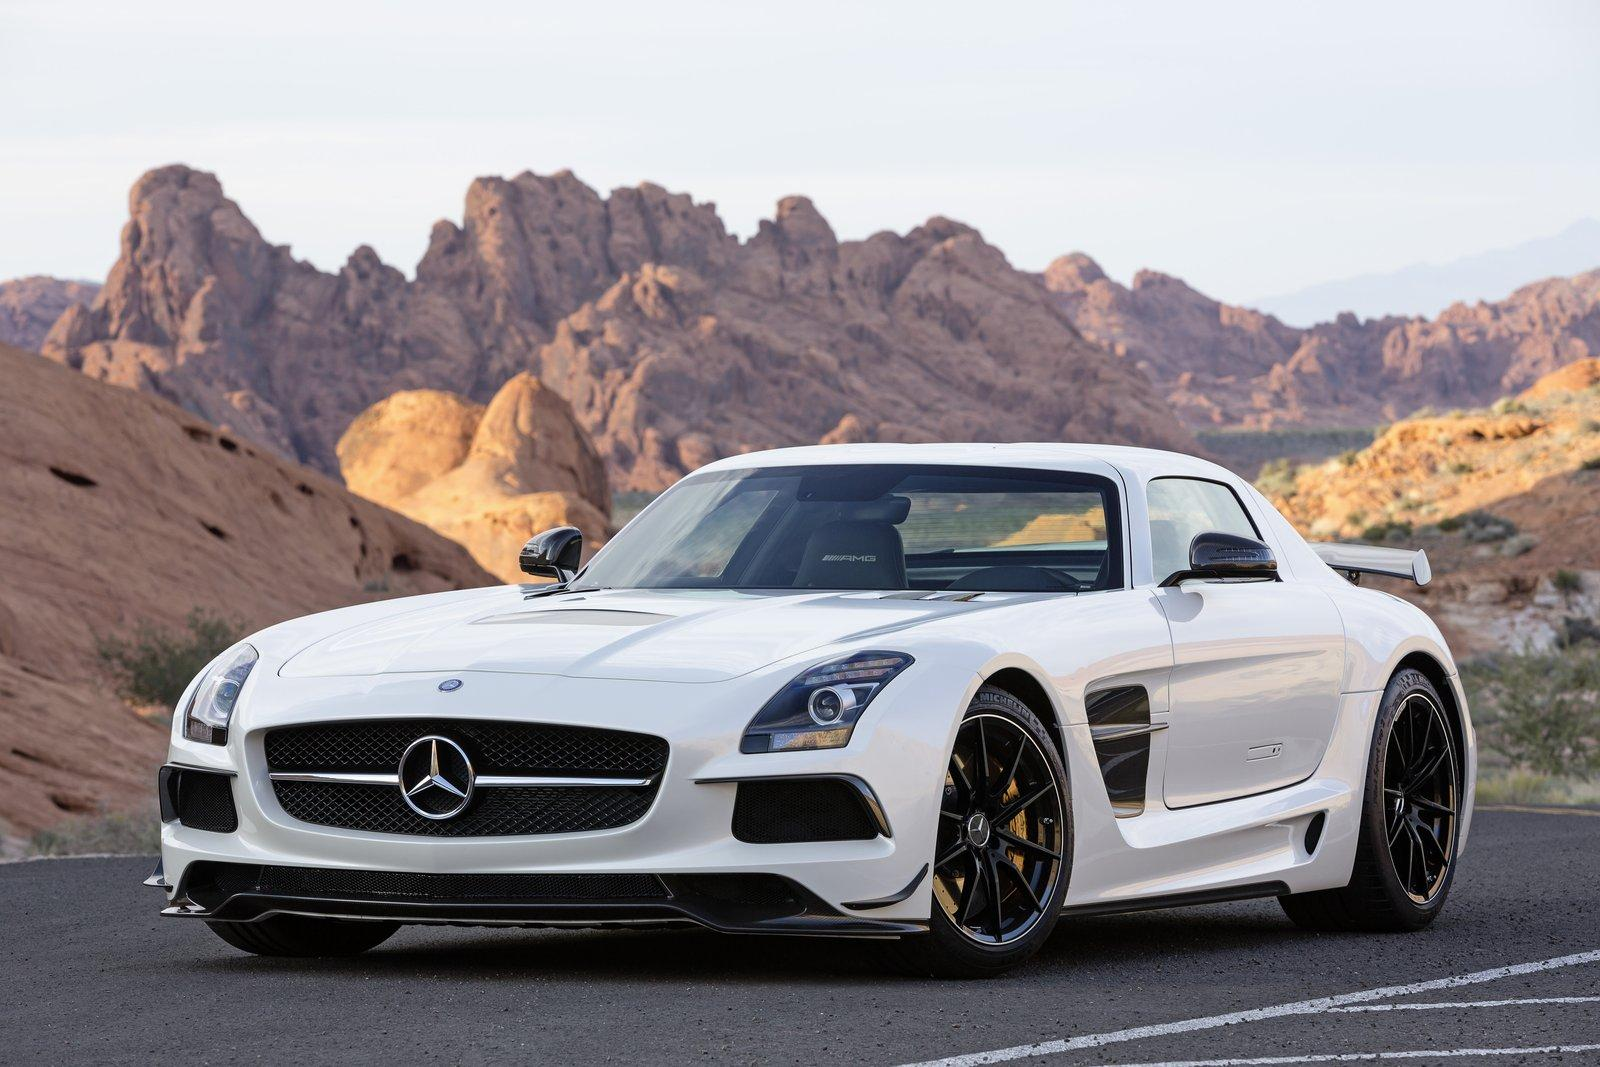 2019 Mercedes Benz SL500 photo - 1